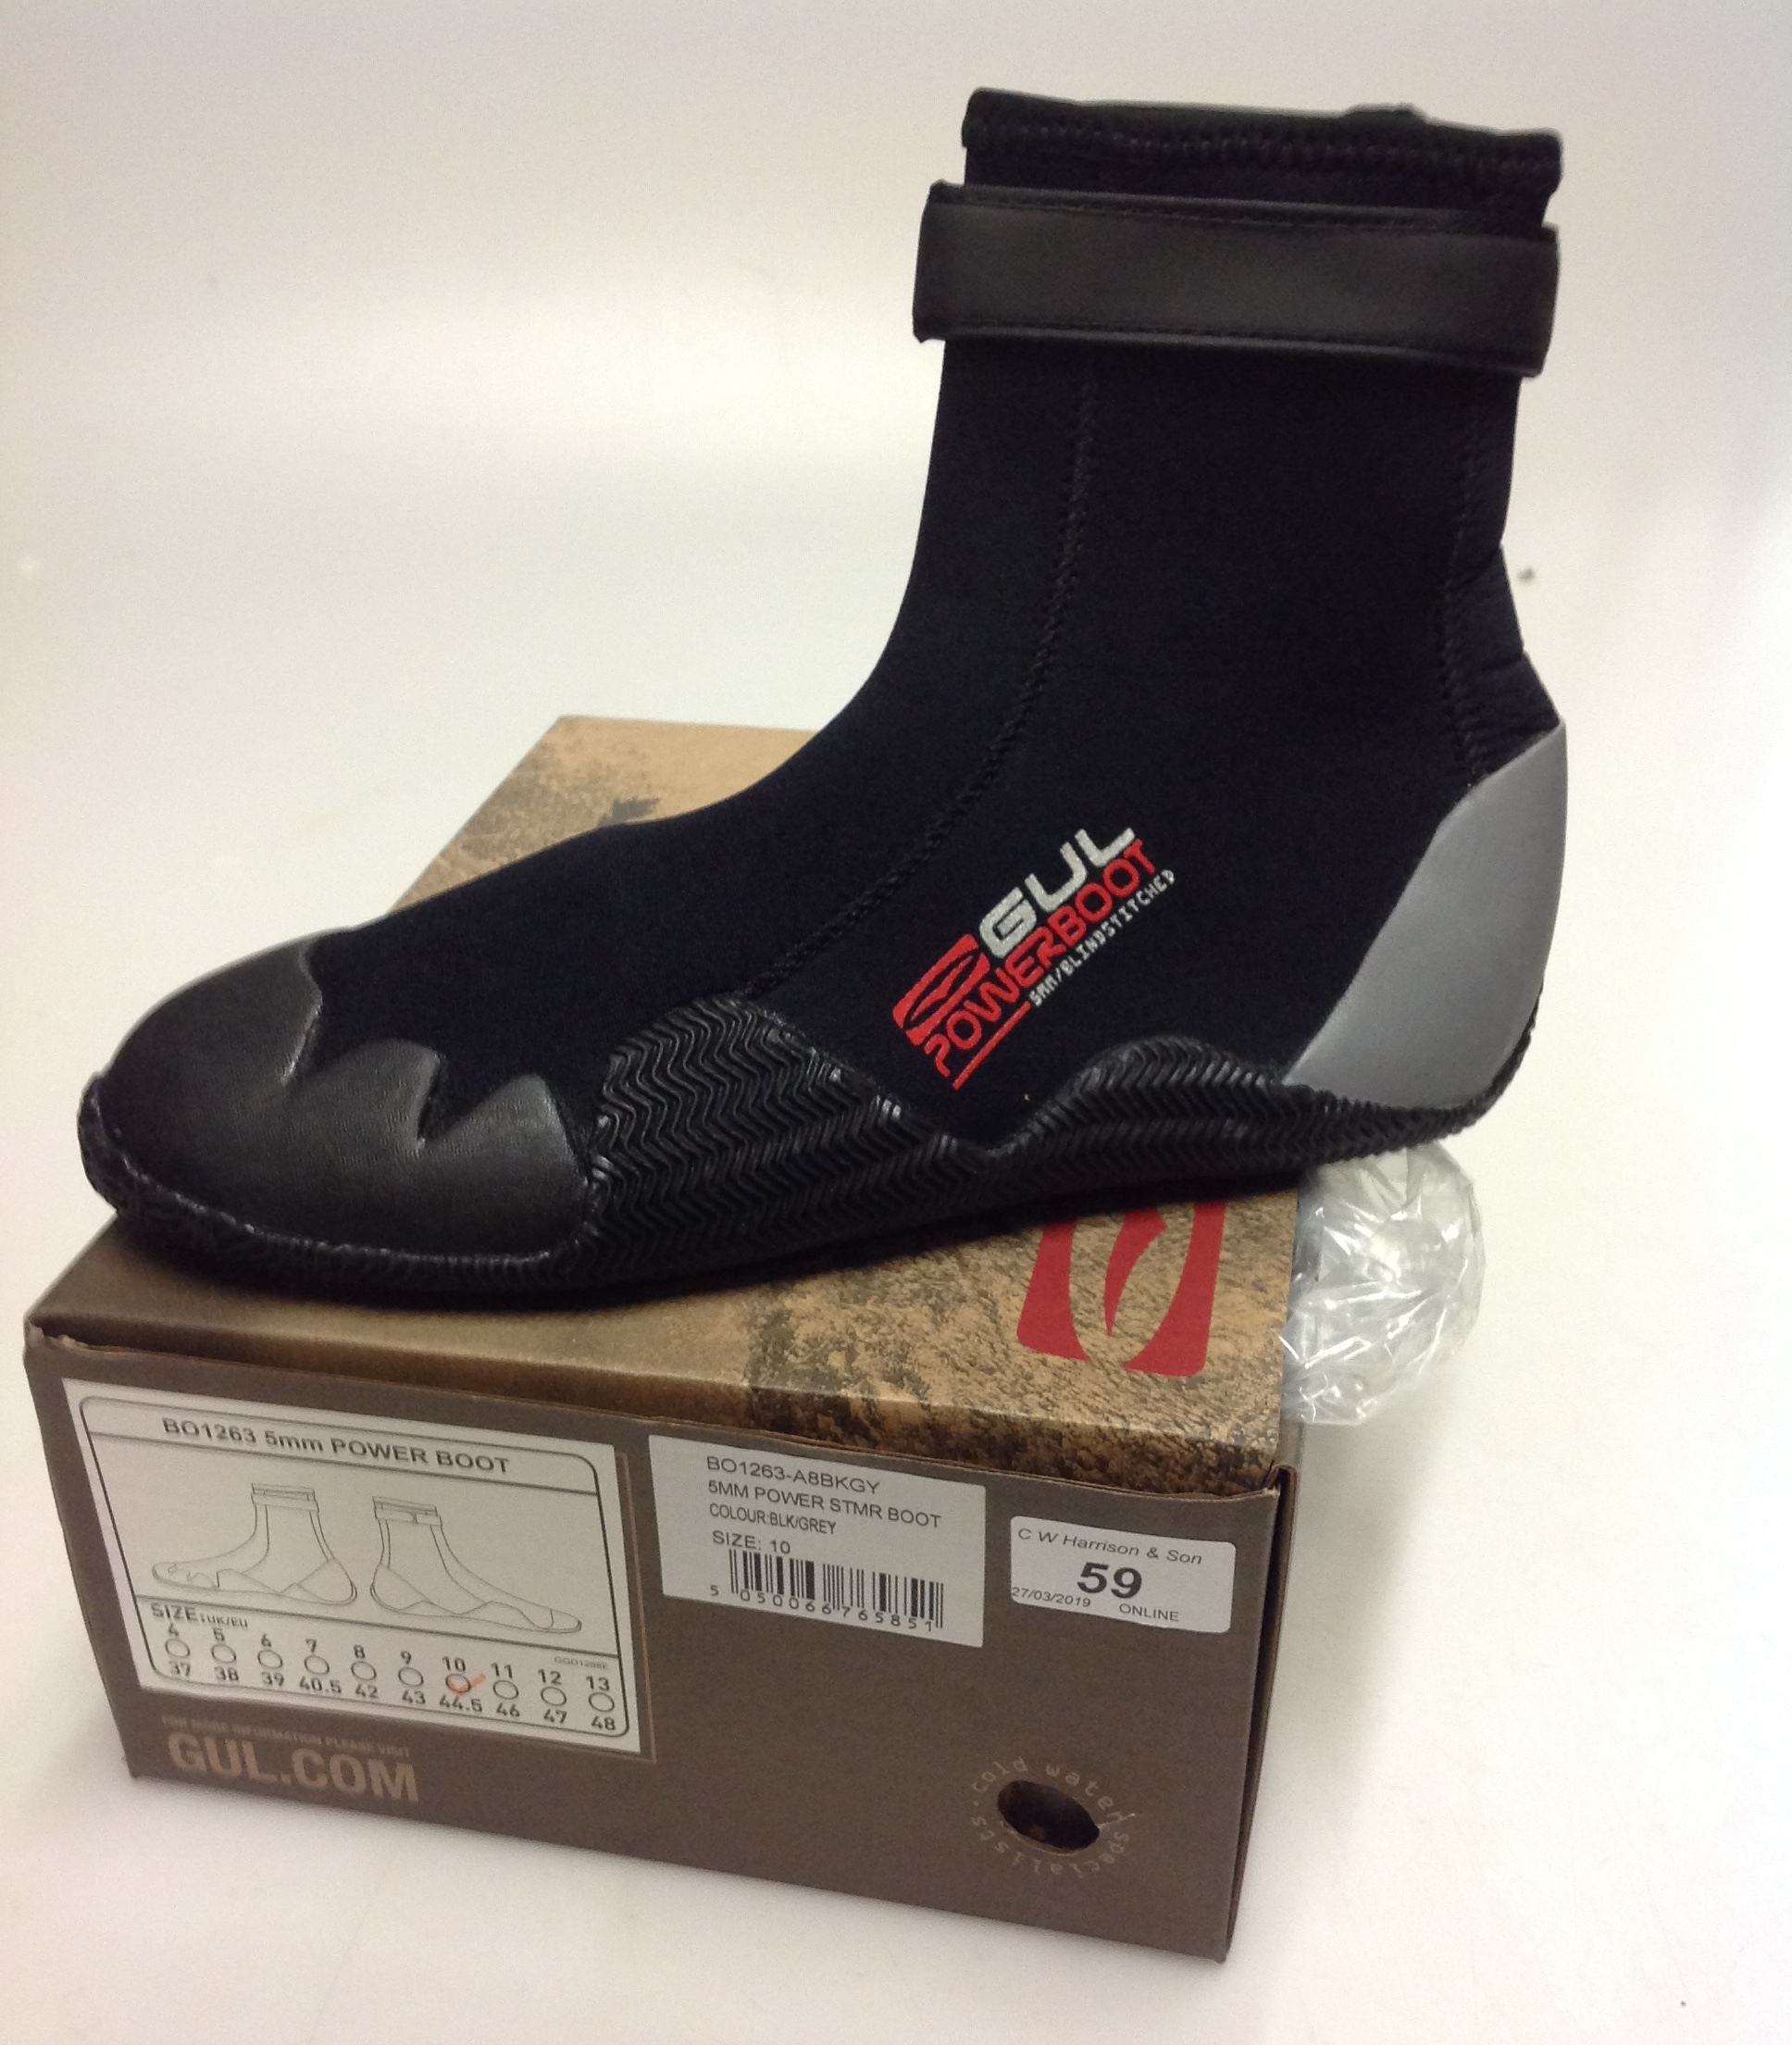 Lot 59 - Pair of Gul 5MM Power STMR boots black and grey - size 10